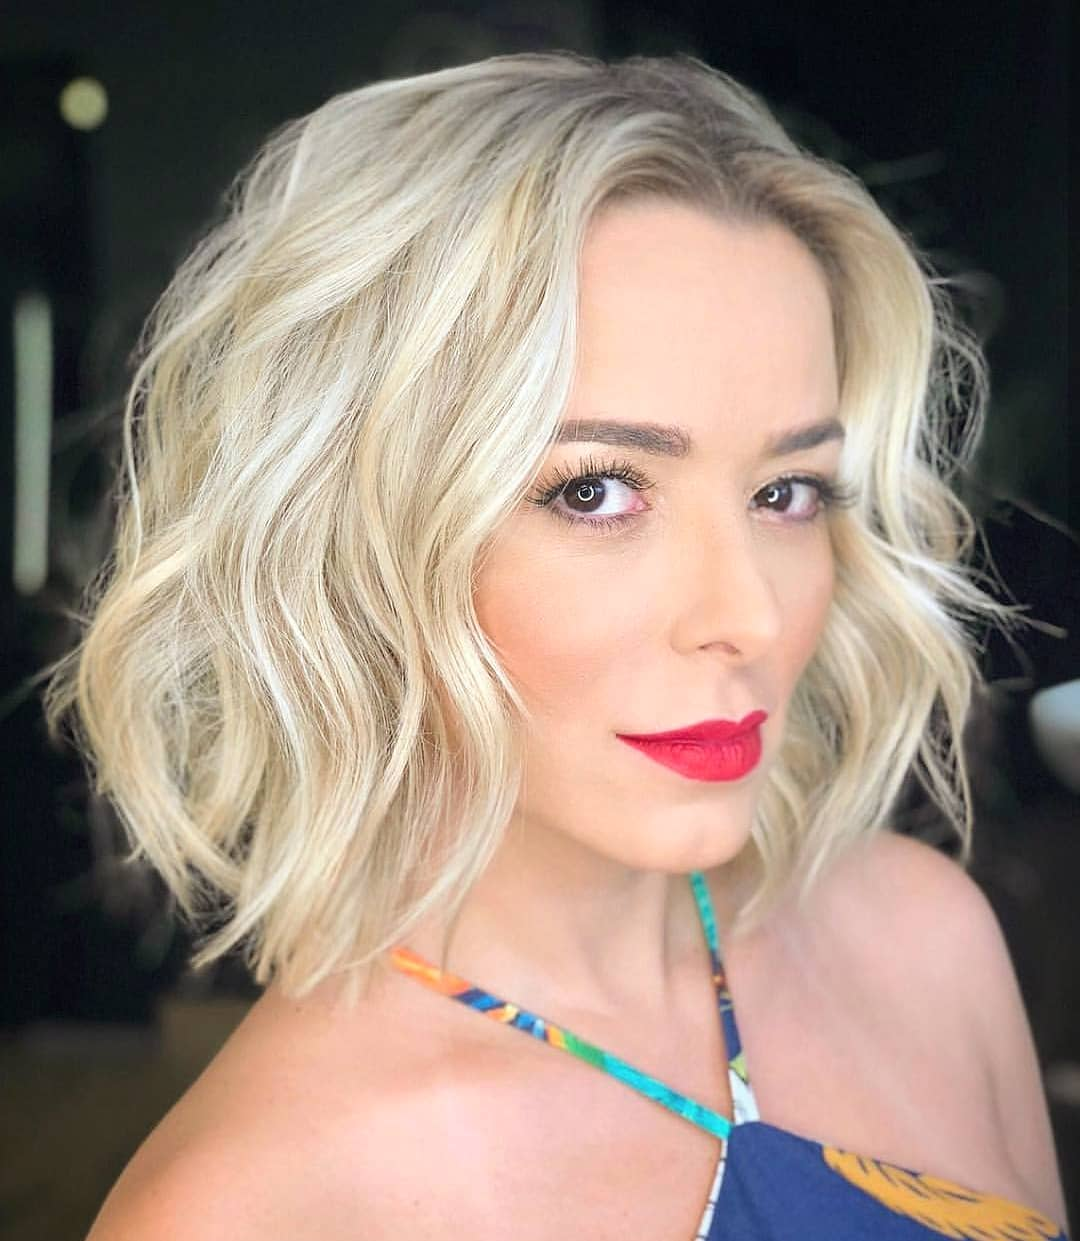 Classic Shoulder Length Haircut for Women, Best Medium Hairstyles Designs